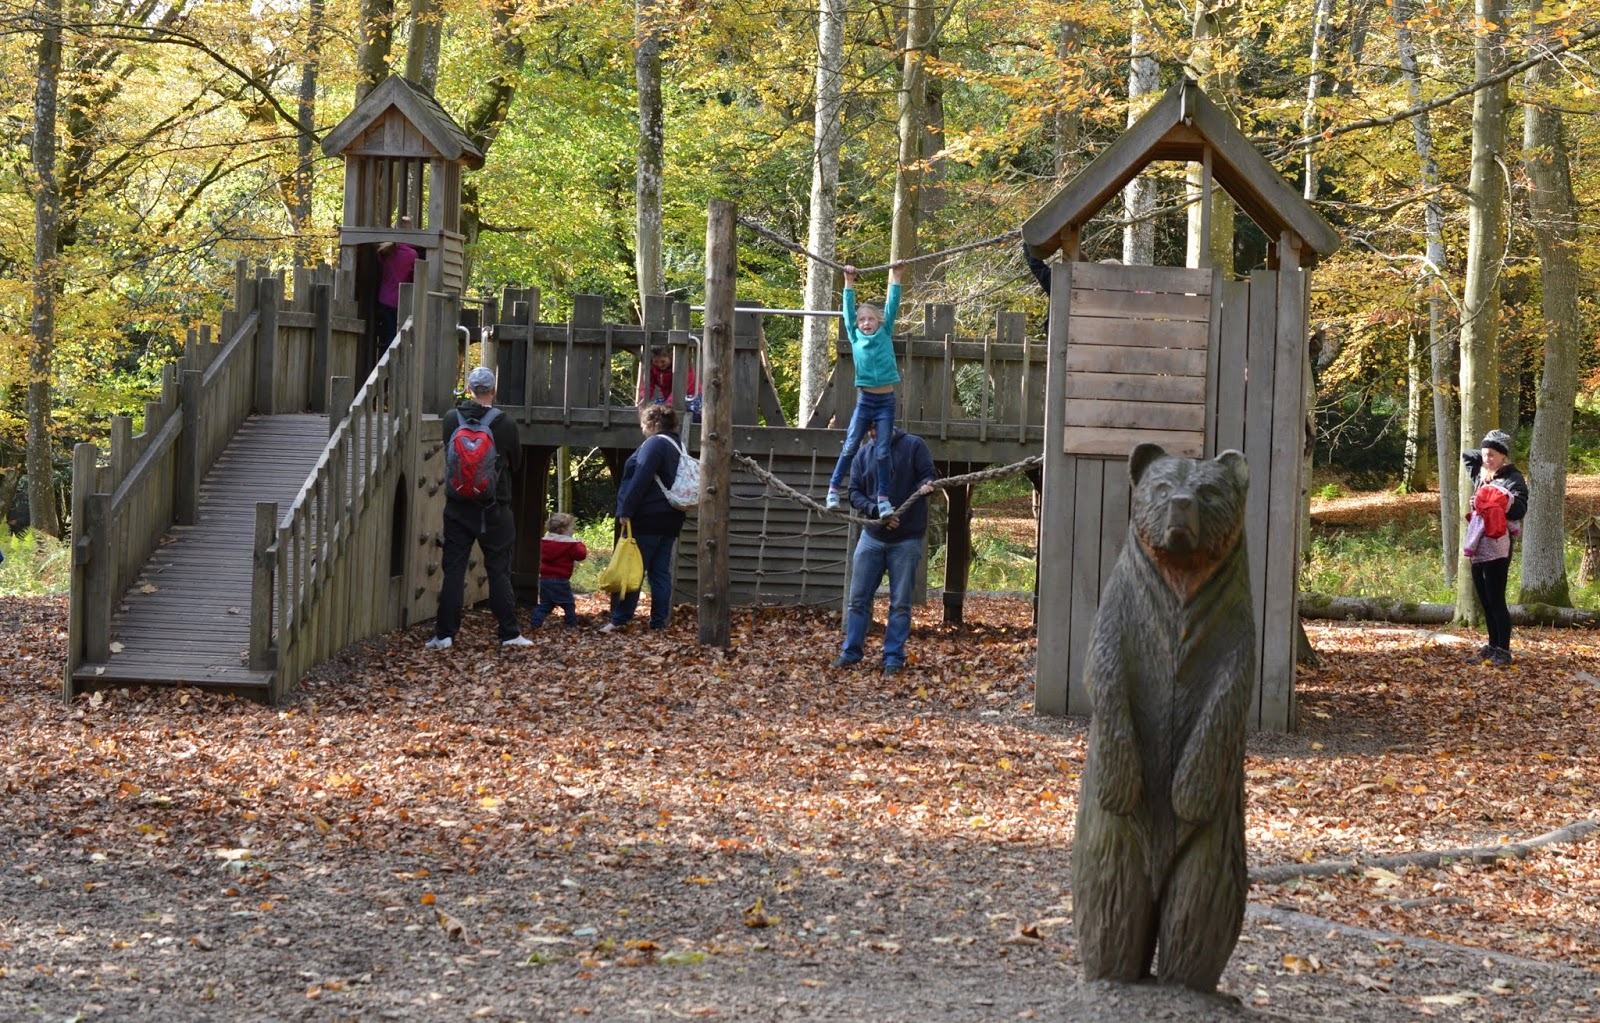 Visiting the Adventure Playground & Outdoor Play Areas at Wallington Hall  - castle park